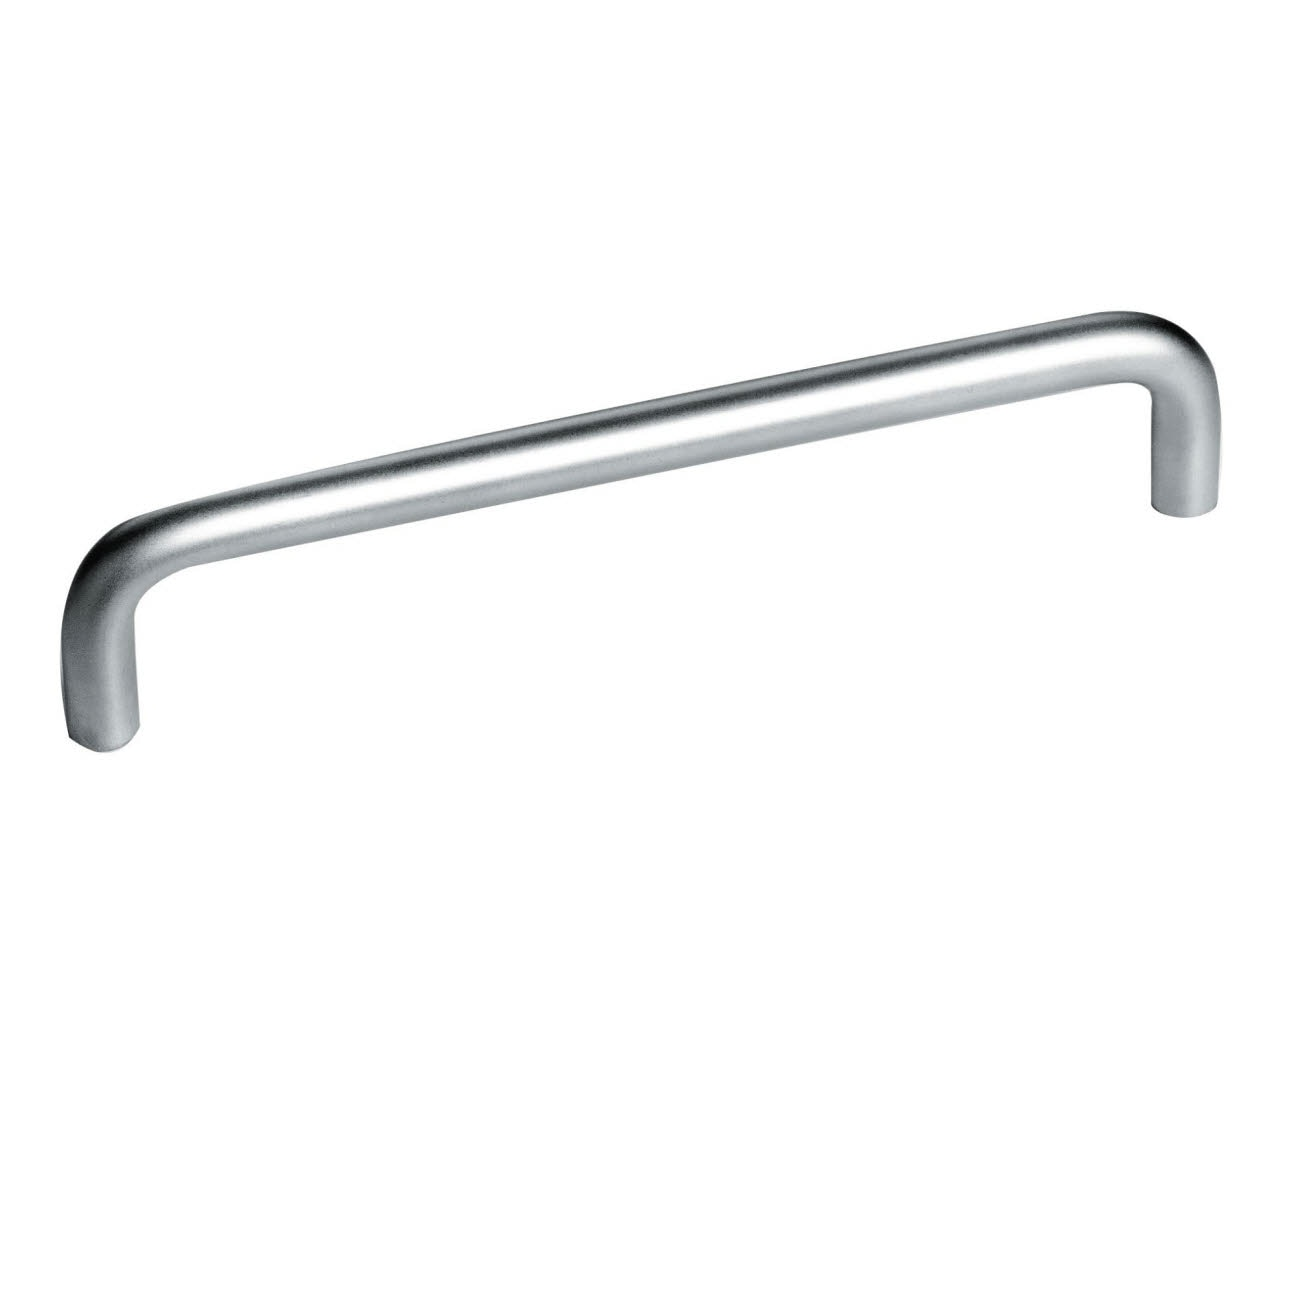 Metal bar stainless steel coloured